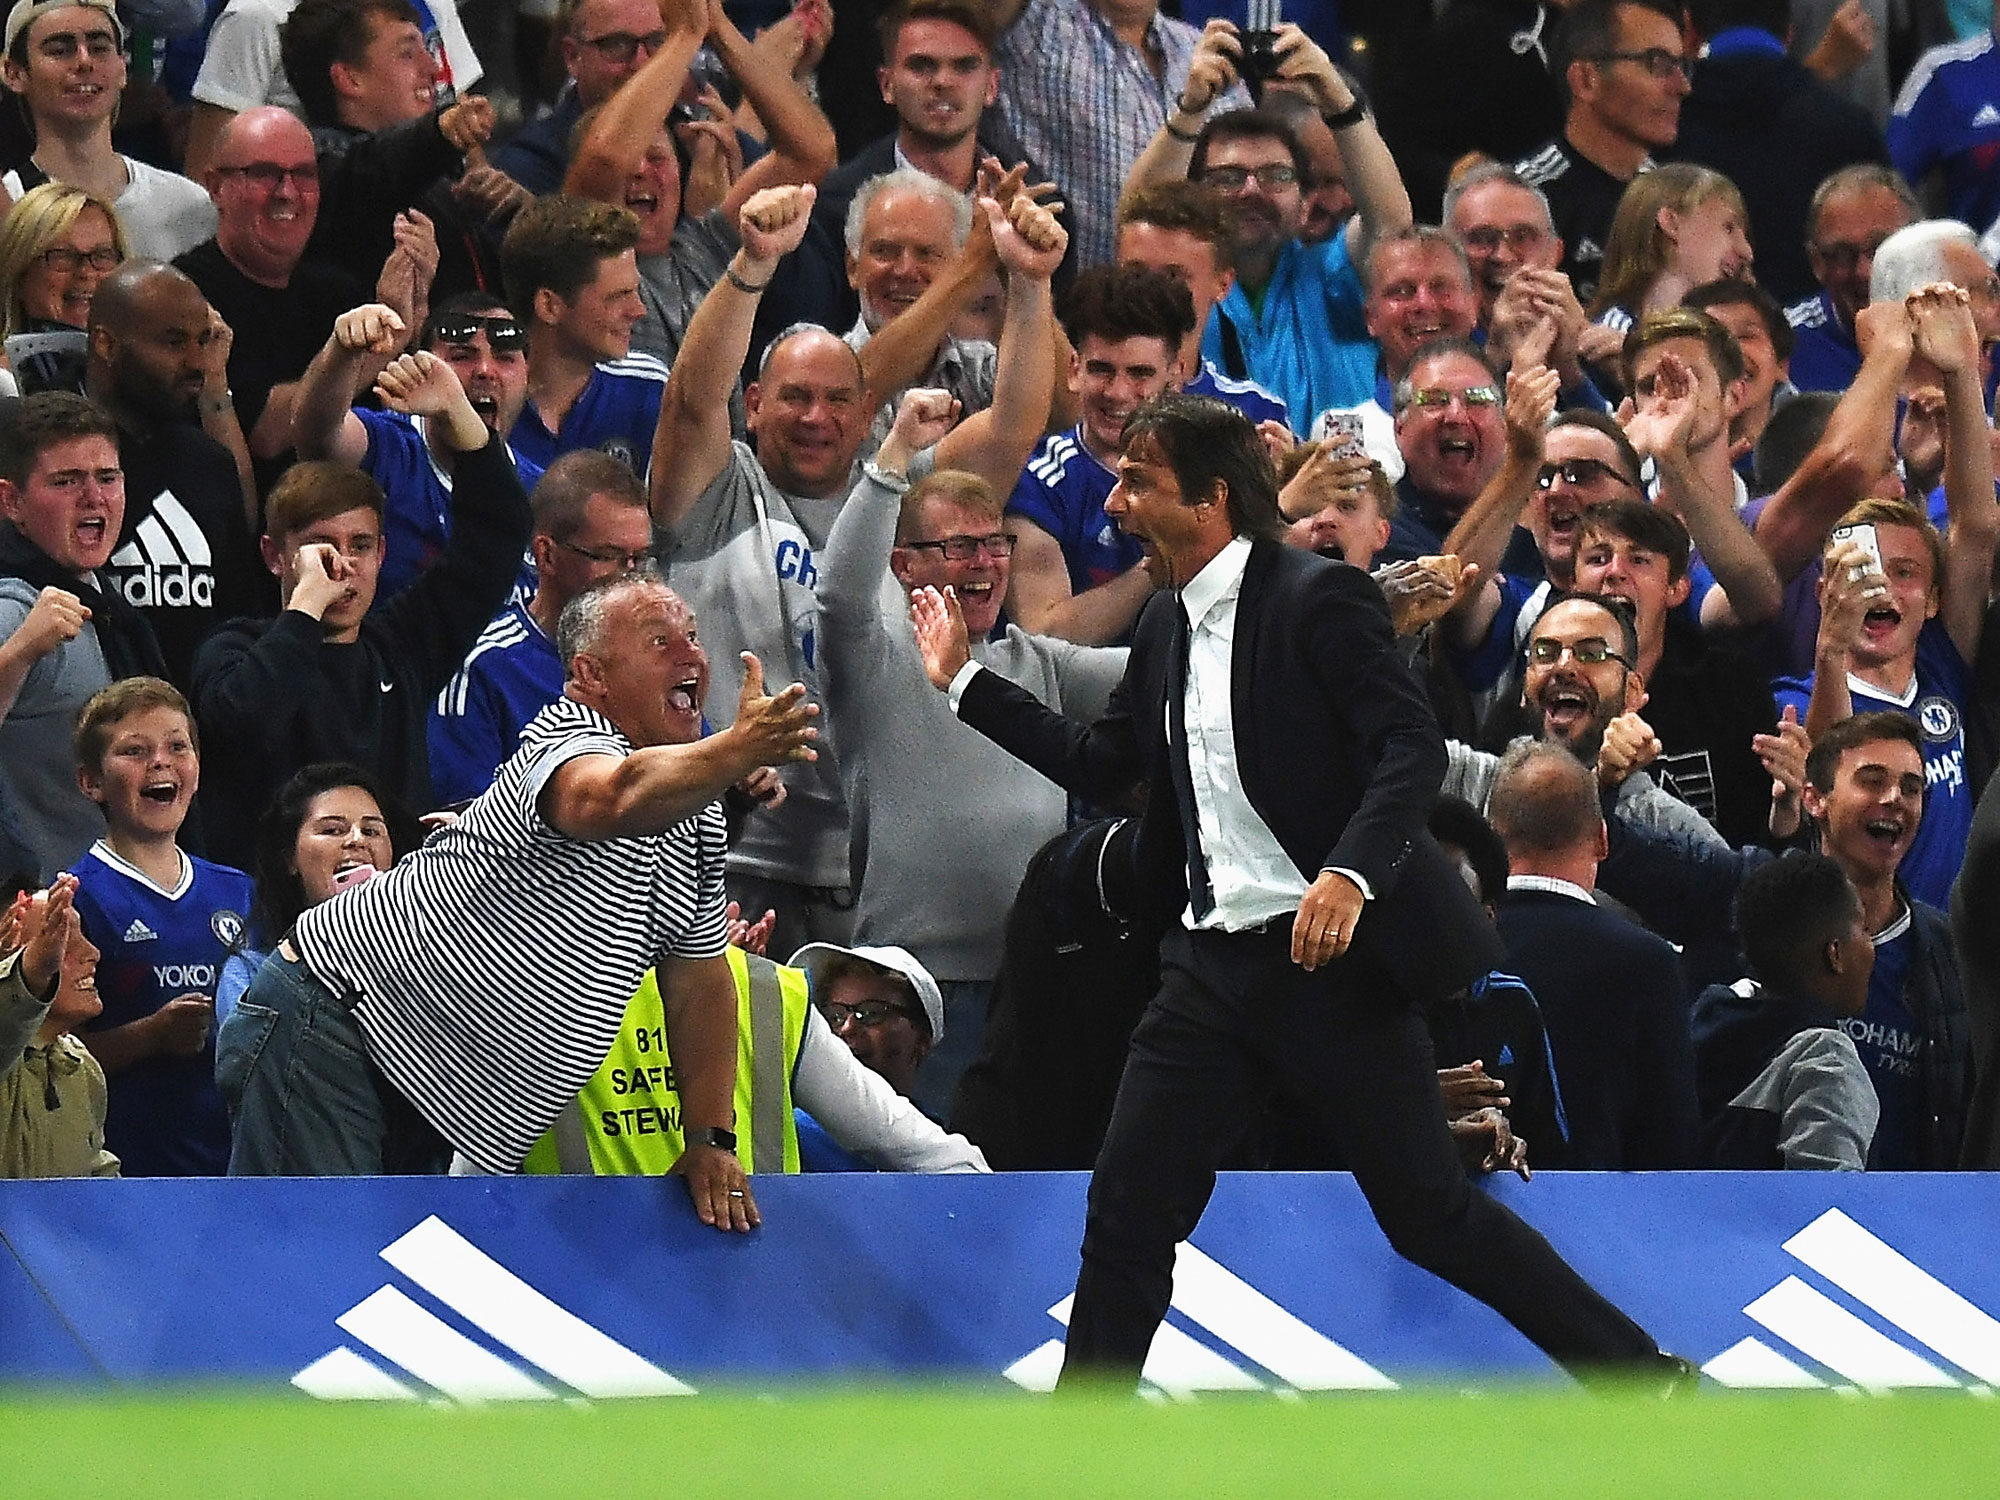 Antonio Conte has guided Chelsea to the Premier League title